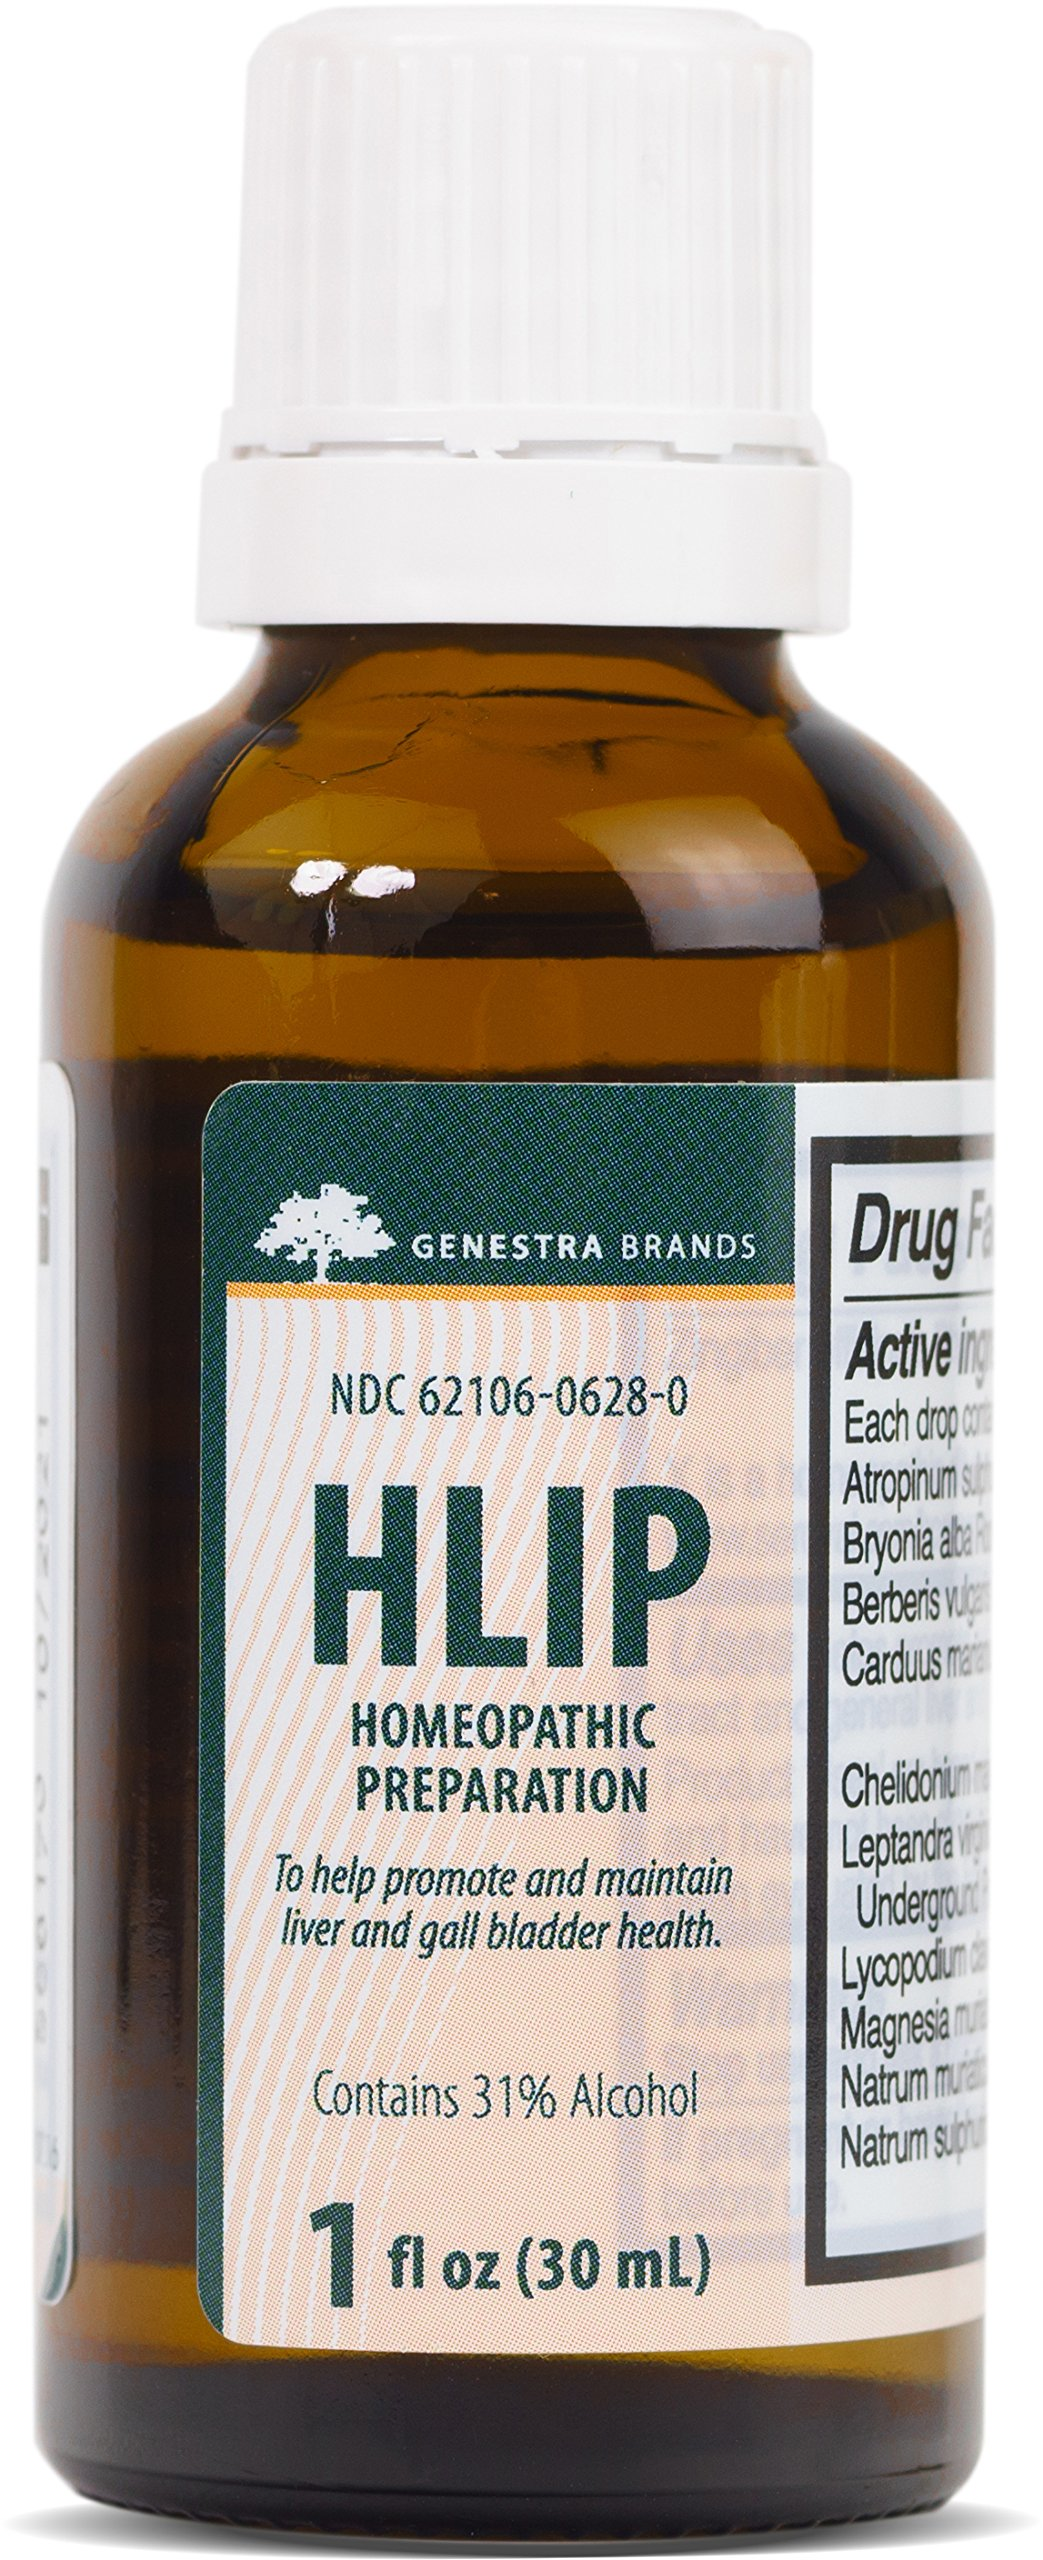 Genestra Brands - HLIP - Organotherapy and Homeopathic Remedy - 1 fl oz (30 ml) by Genestra Brands (Image #1)